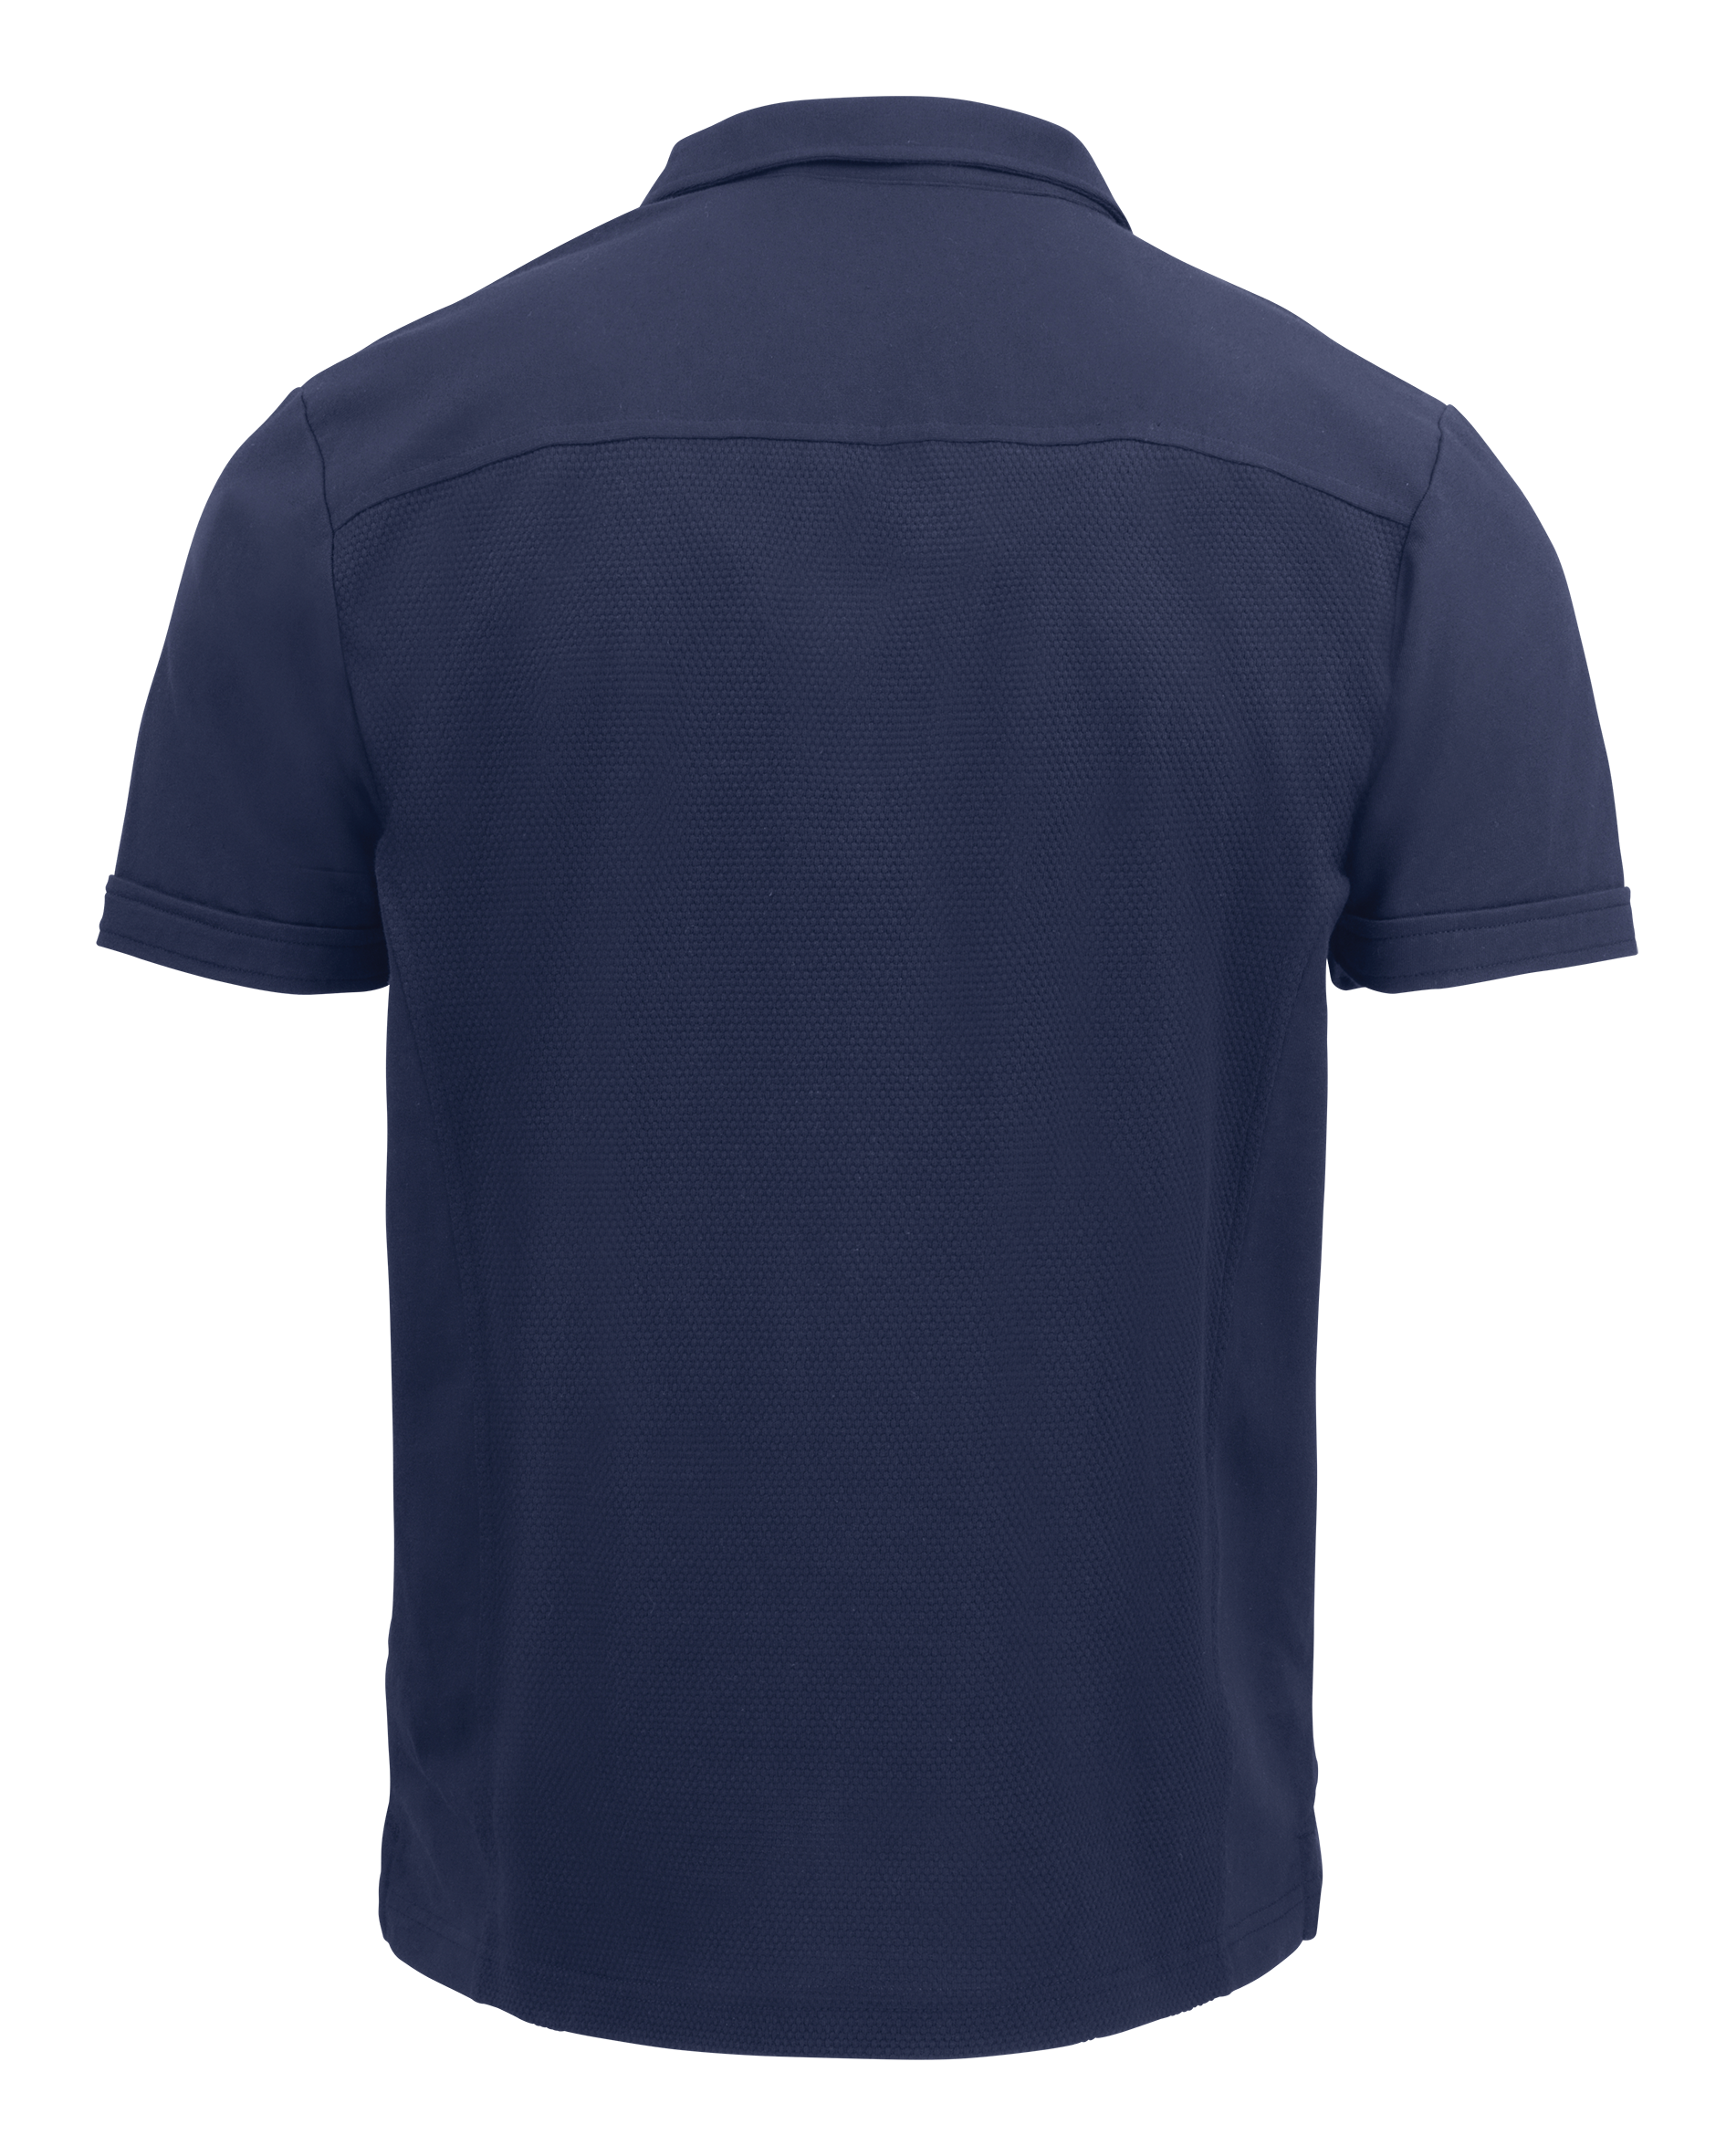 Shellden in 600 Navy Back View